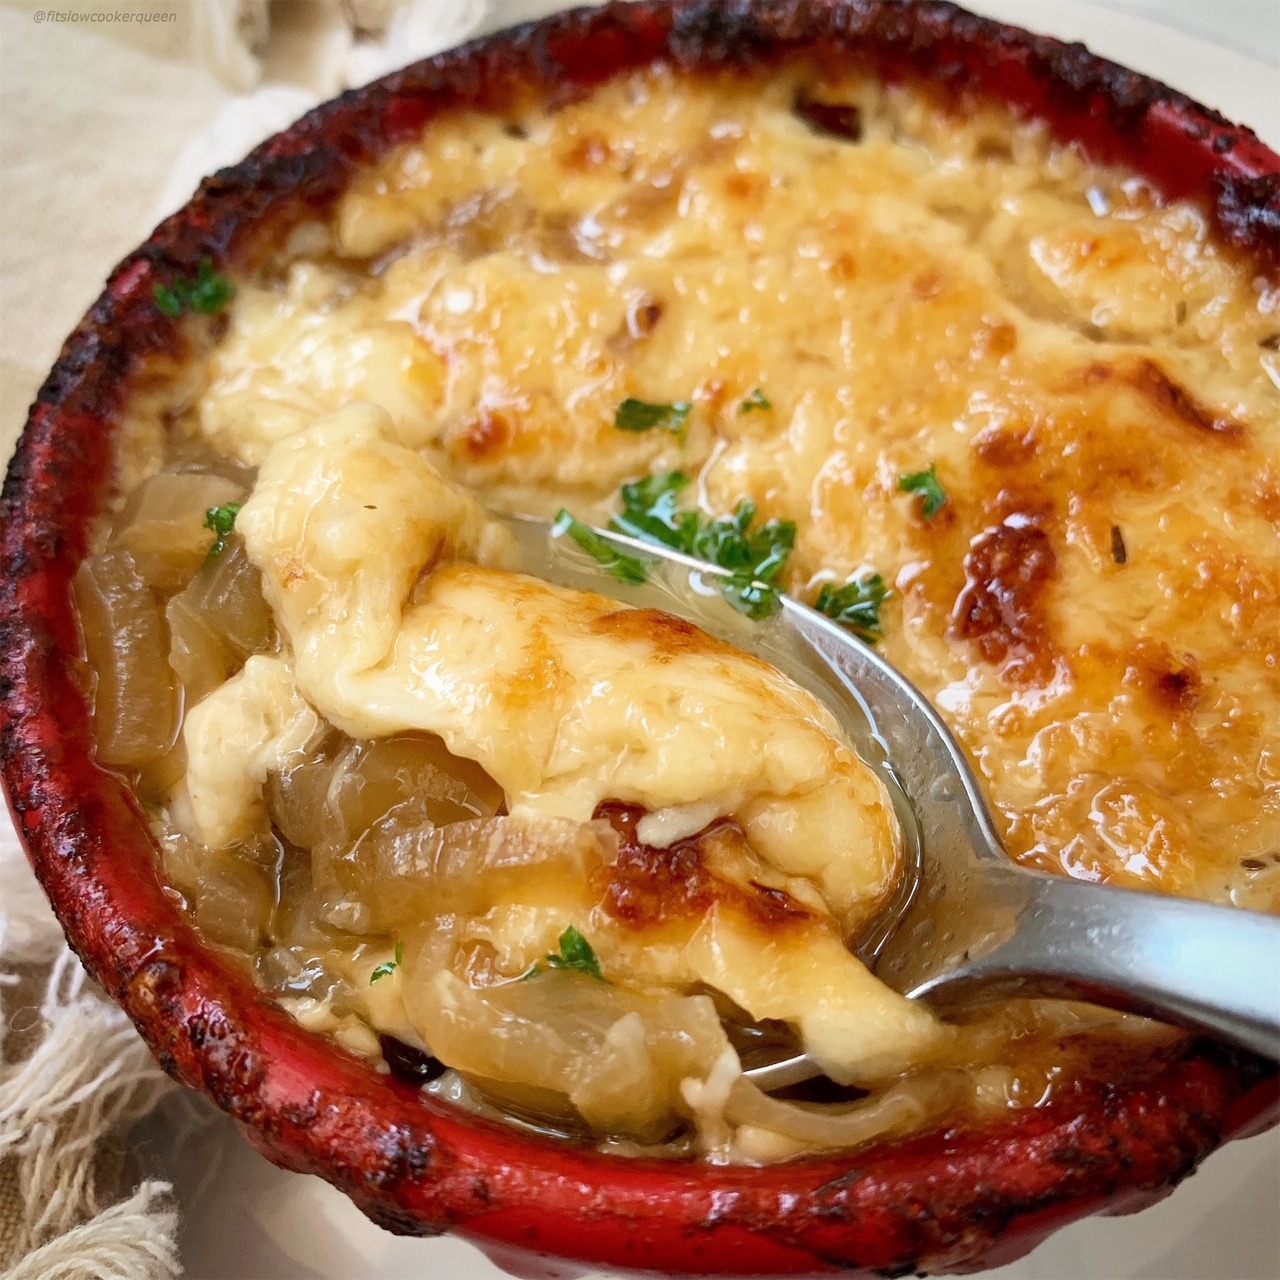 This low-carb version of French onion soup is cheesy and flavorful. Make this healthy yet comforting soup in your slow cooker or Instant Pot.